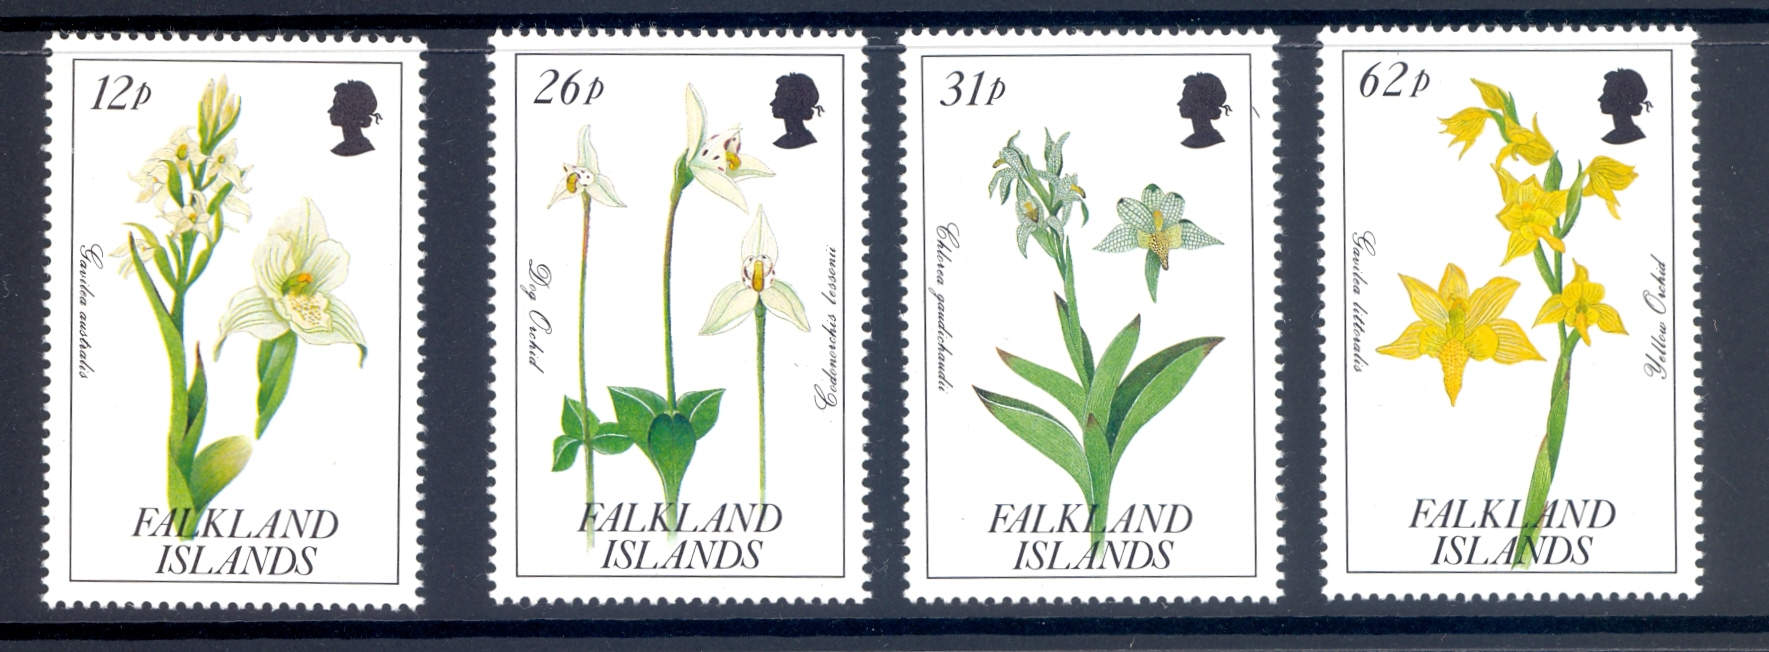 Falkland Islands SG 629-32 Orchids set from 1991 MNH